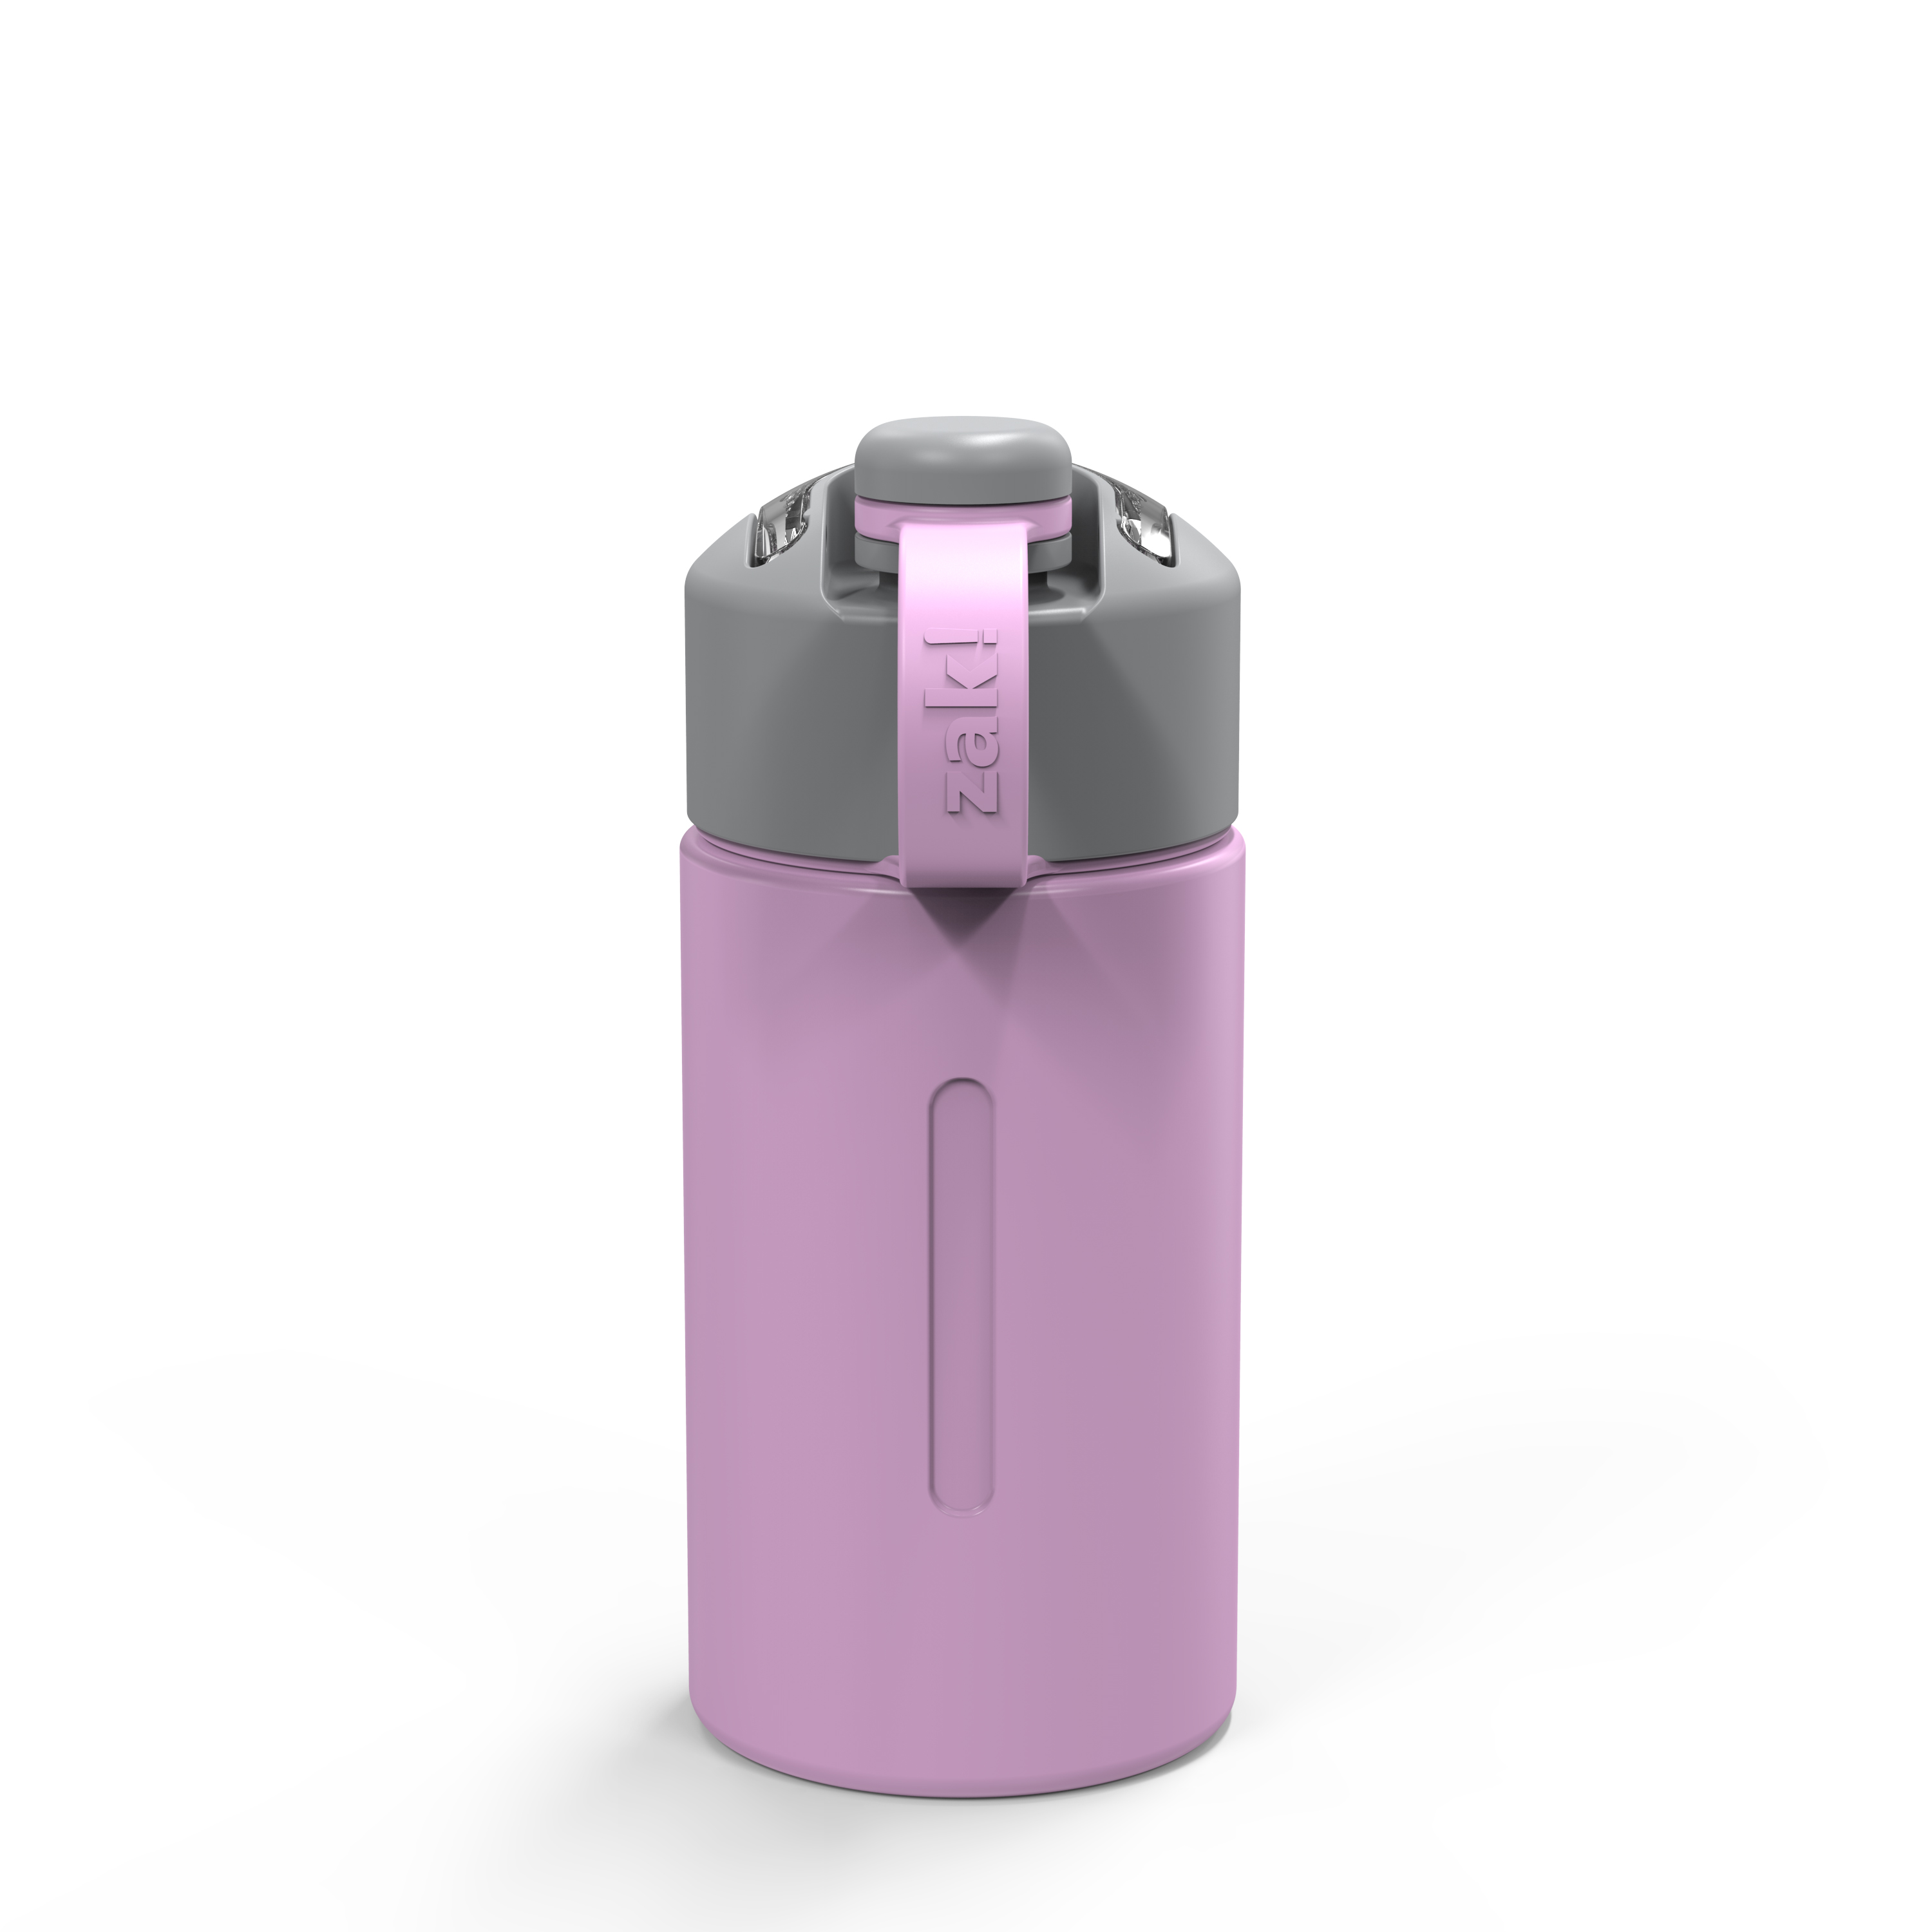 Genesis 12 ounce Vacuum Insulated Stainless Steel Tumbler, Lilac slideshow image 6